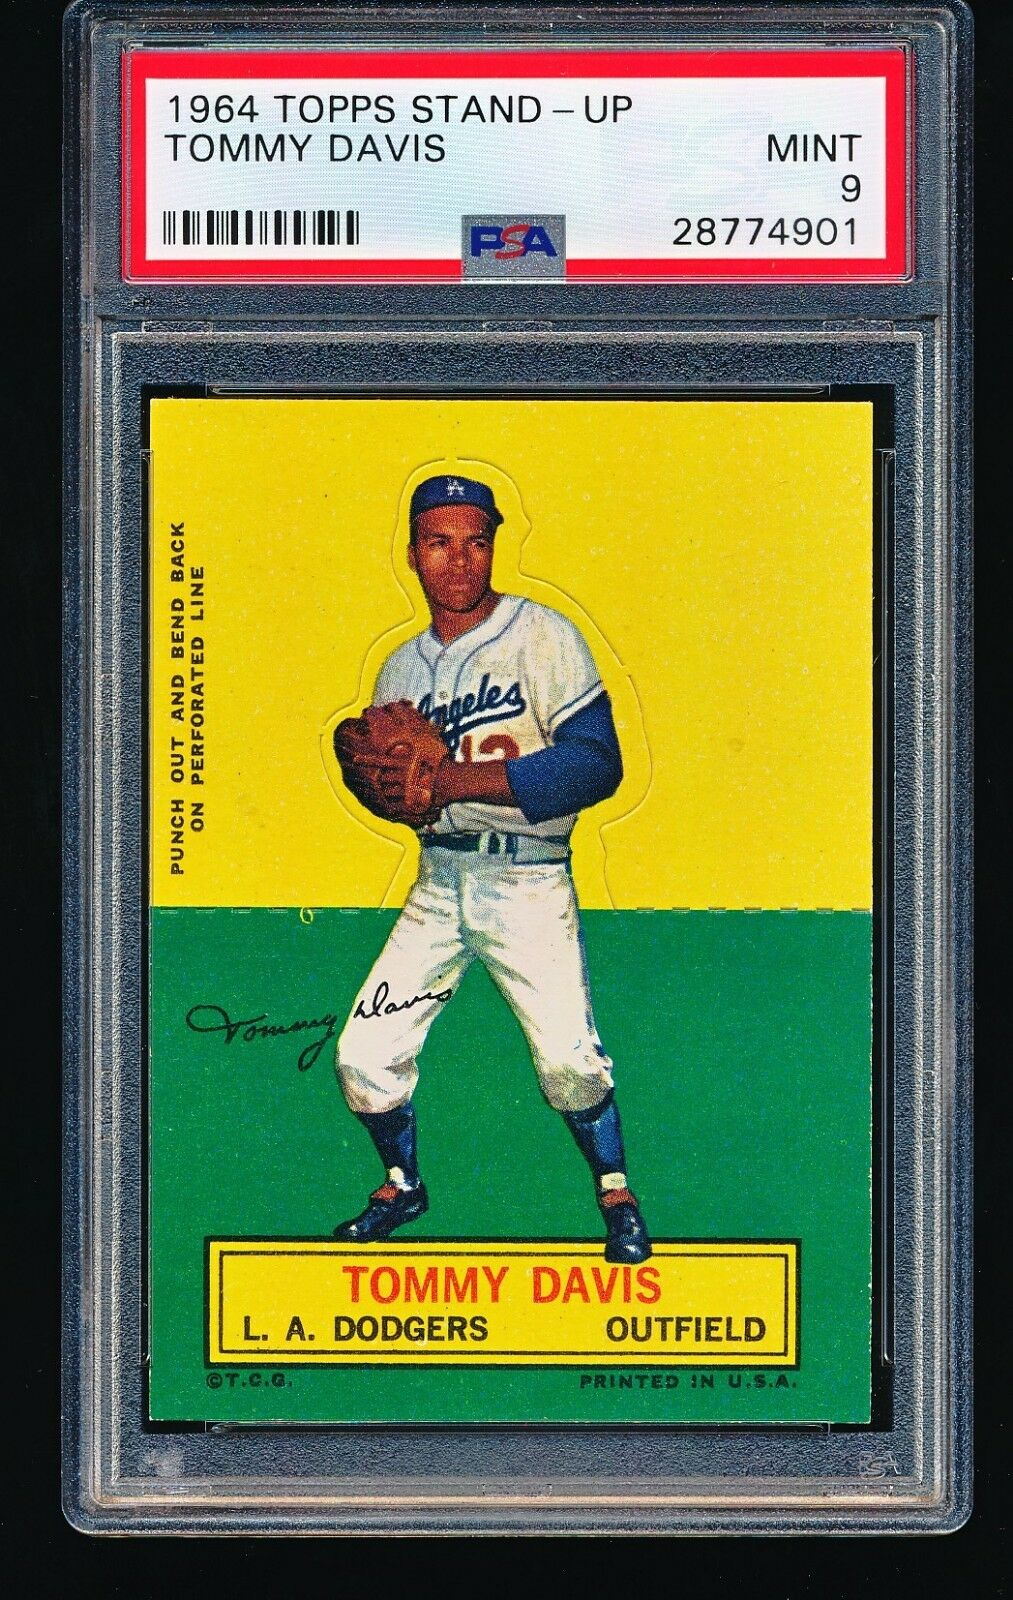 1964 Topps Stand-Up TOMMY DAVIS PSA 9 - 1/2 - Short Print